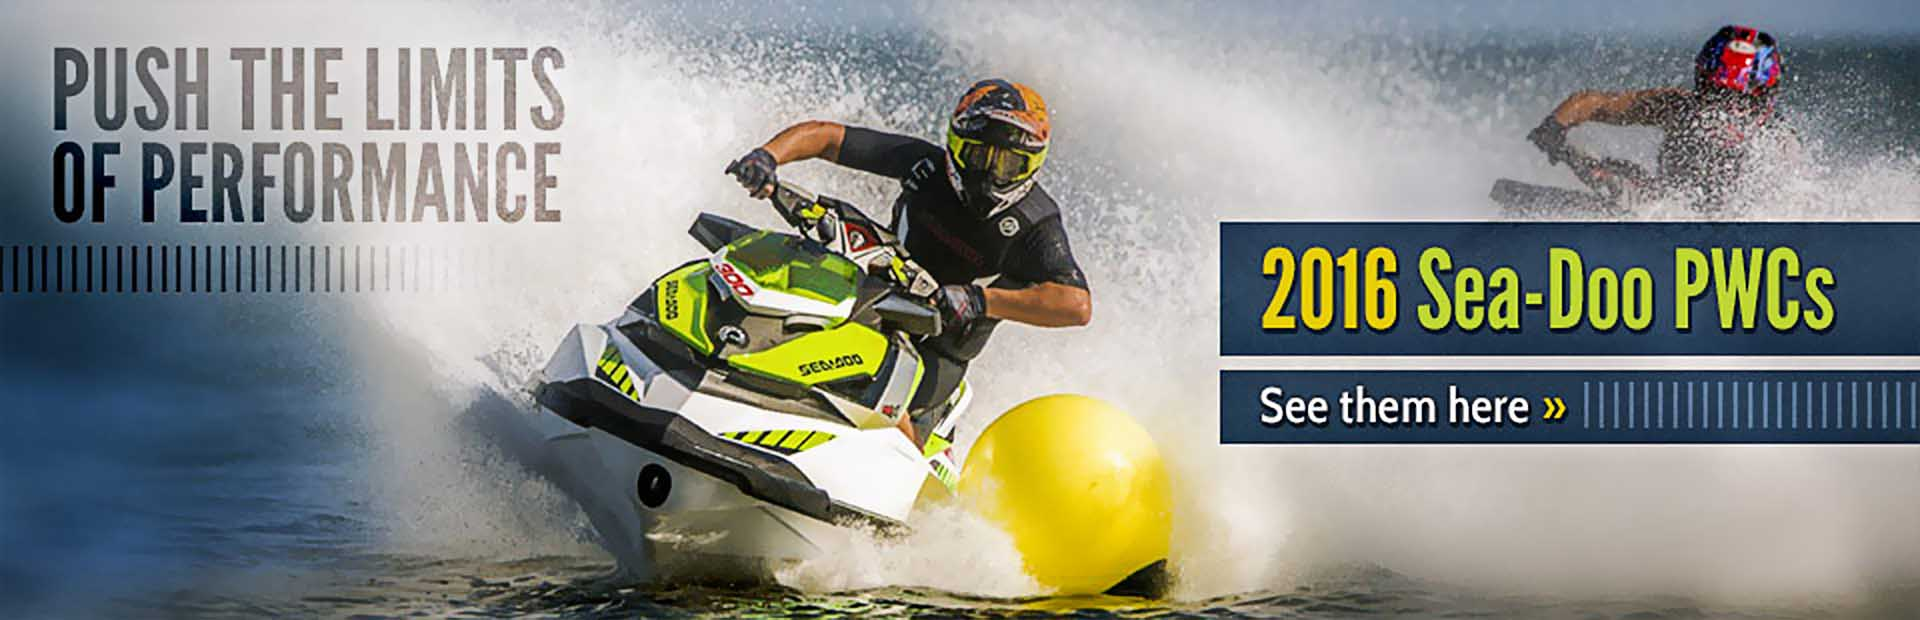 2016 Sea-Doo PWCs: Click here to view the models.